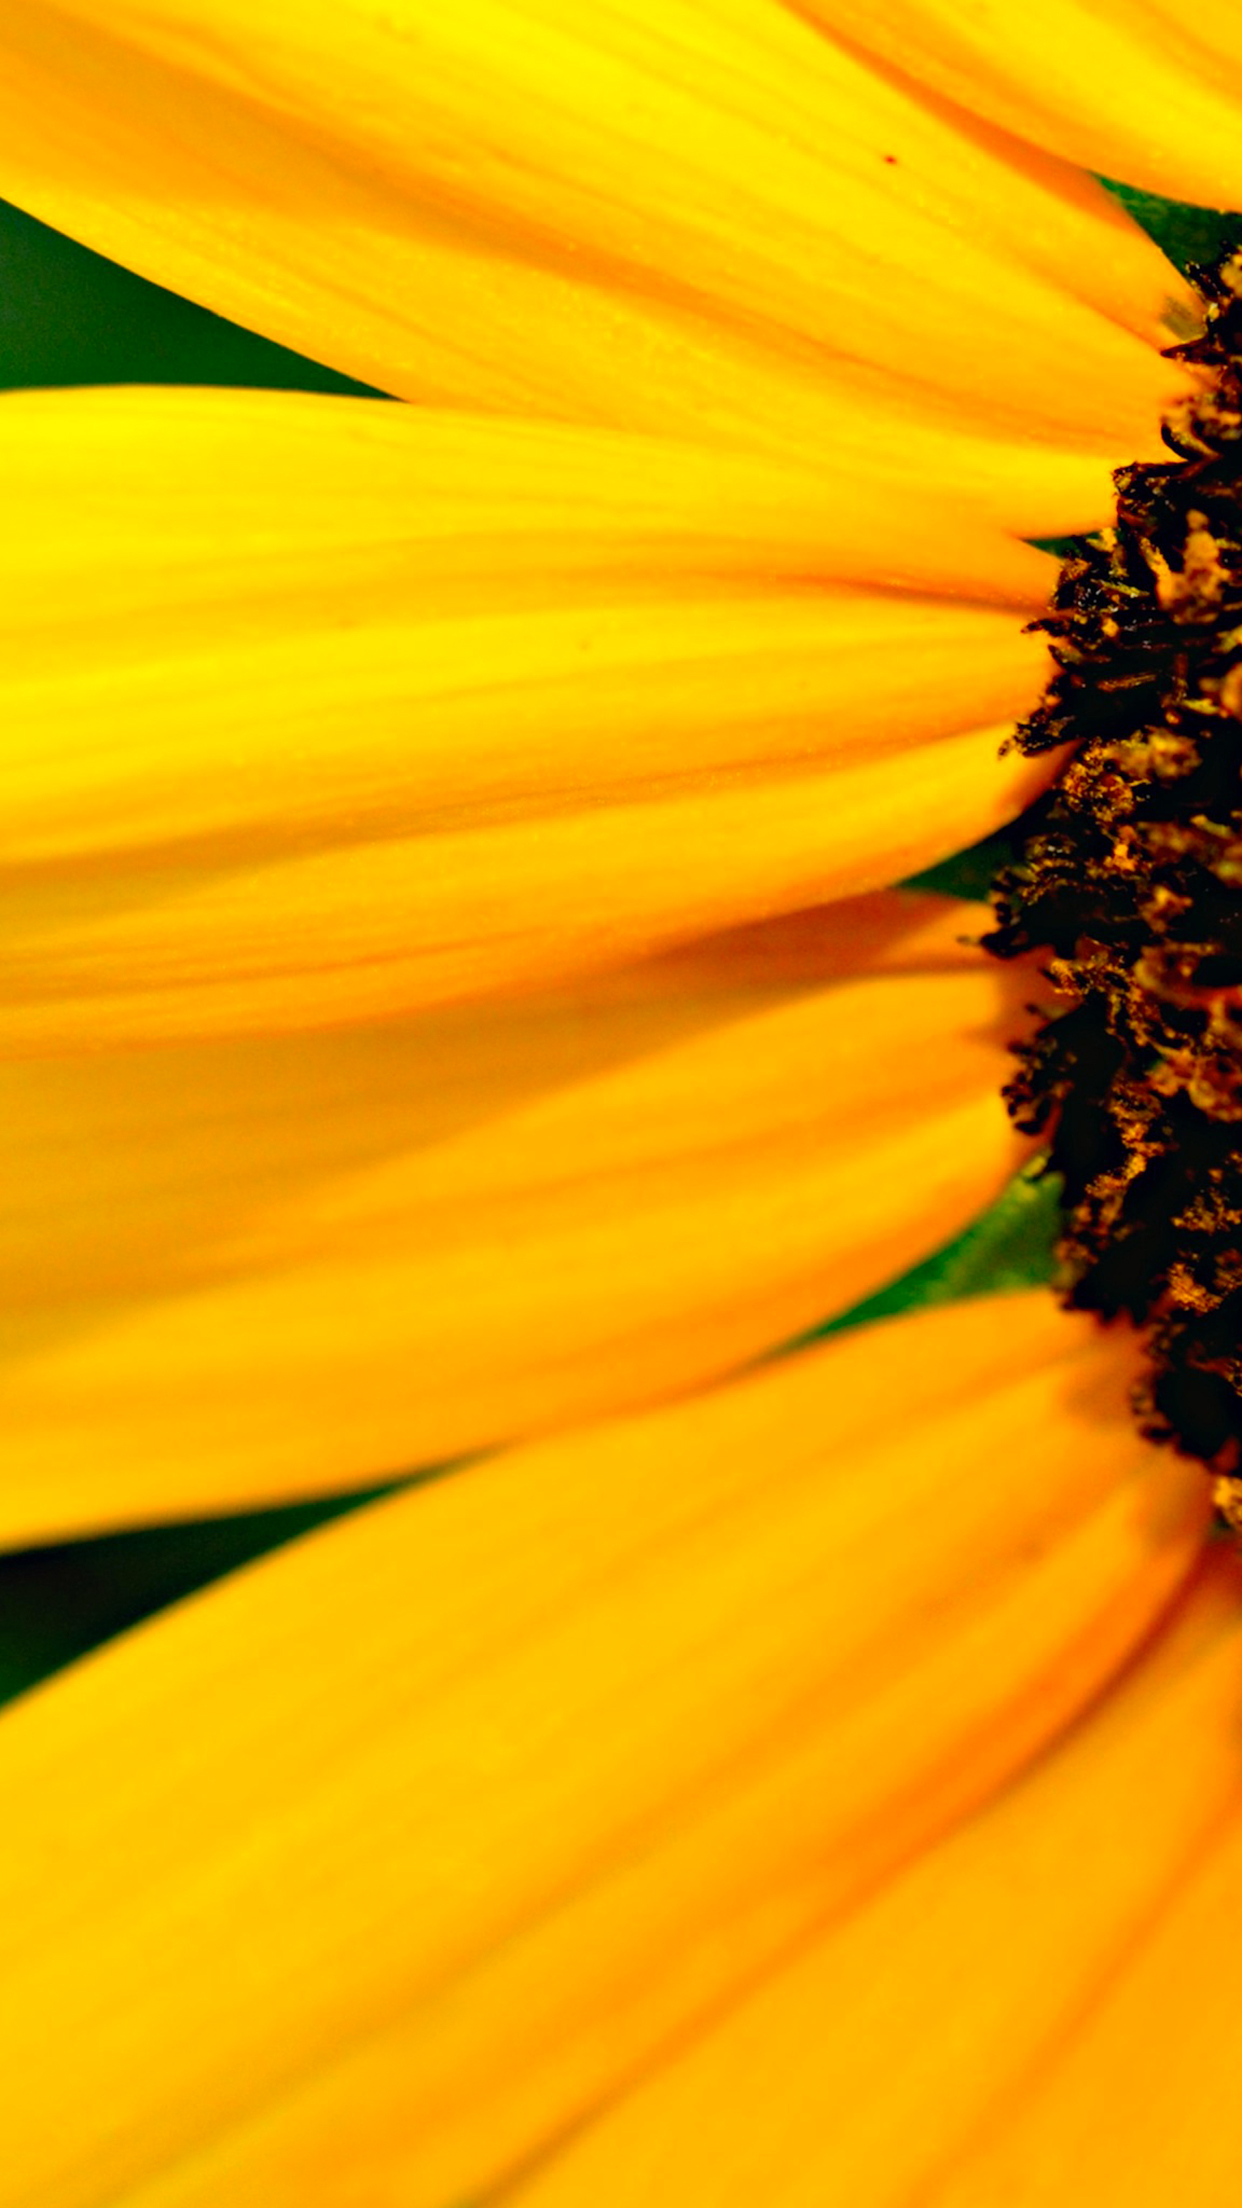 Sunny Sunflower 3Wallpapers iPhone Parallax Sunny Sunflower